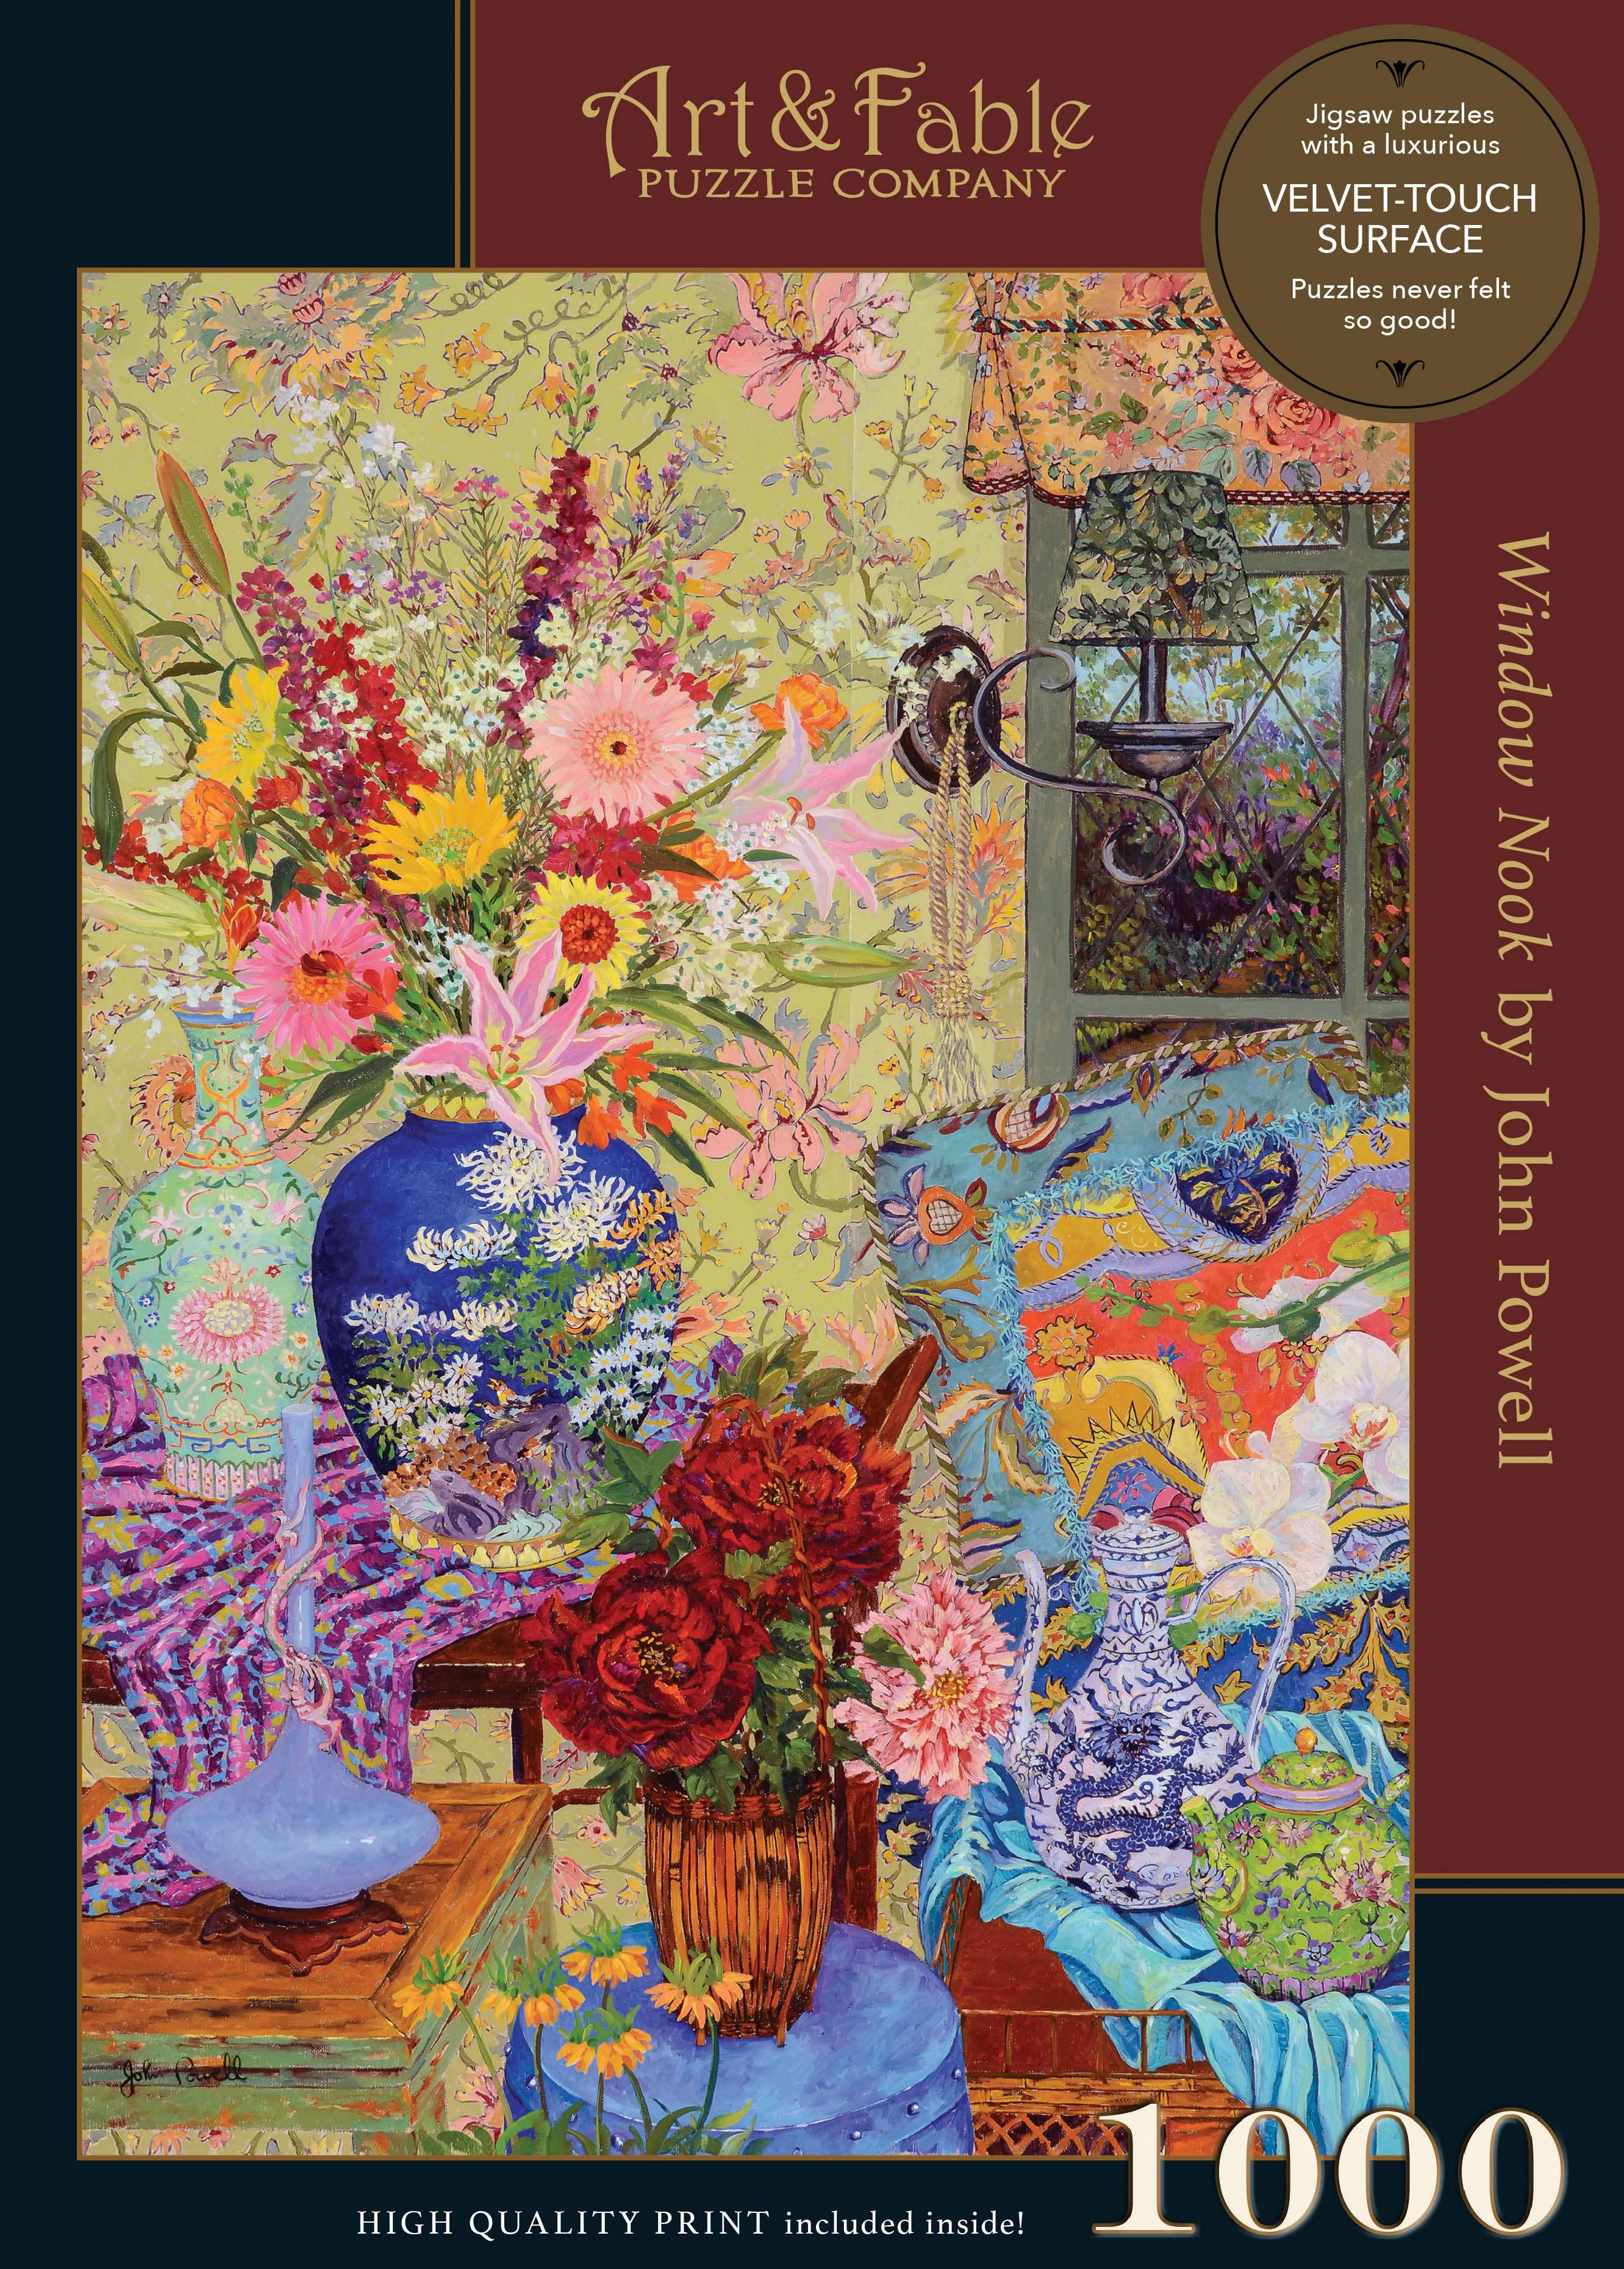 Window Nook, 1000-pc Velvet-Touch Jigsaw Puzzle featuring the art of John Powell | Trada Marketplace